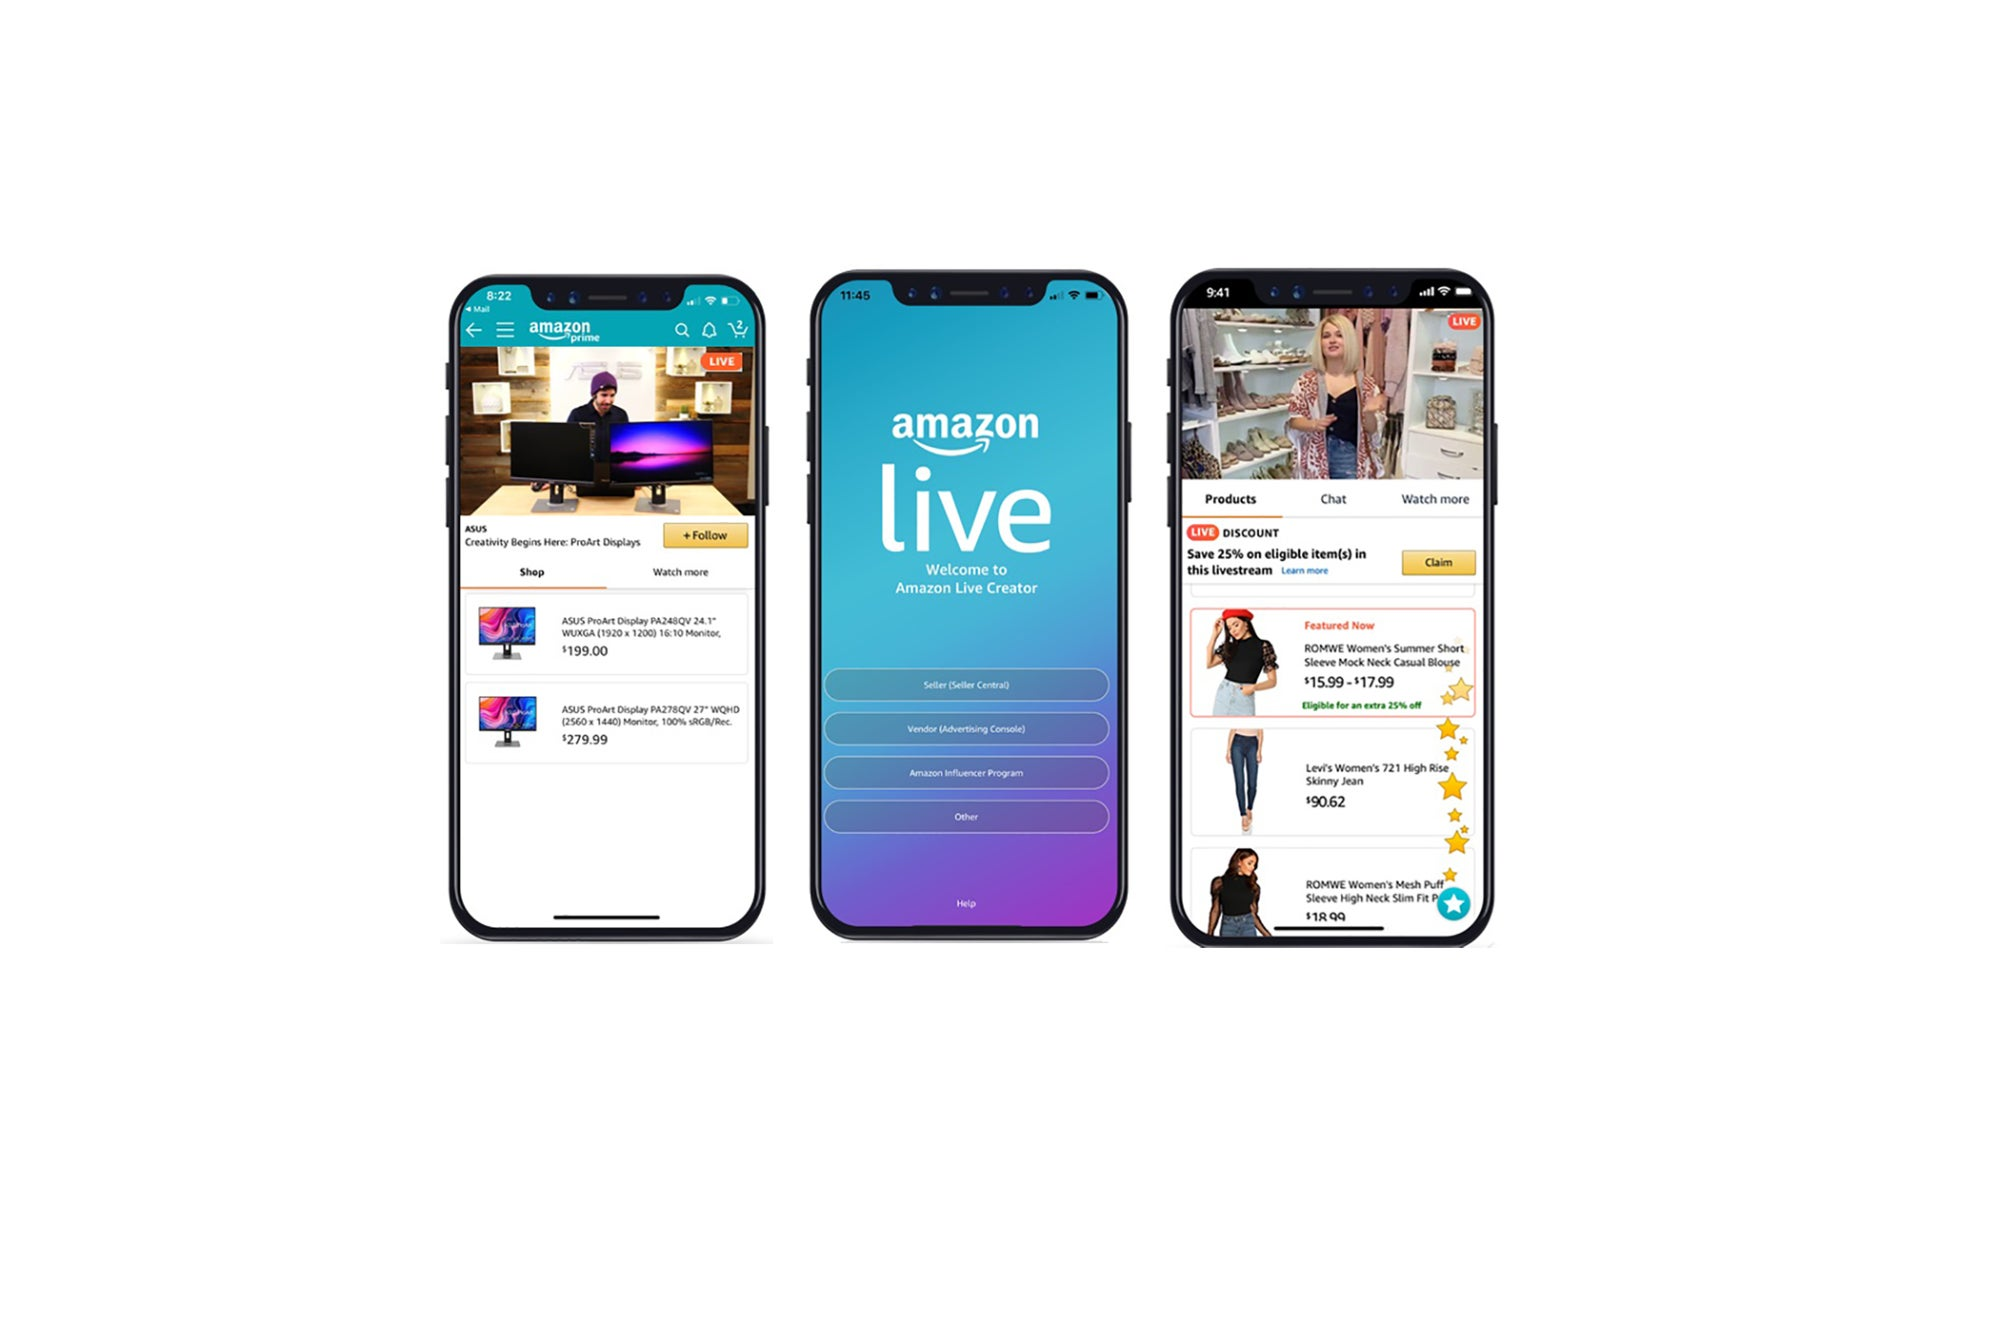 Mobile screens showing the Amazon Live UI with live shoppable video streams and products for purchase integrated into a single-pane view.